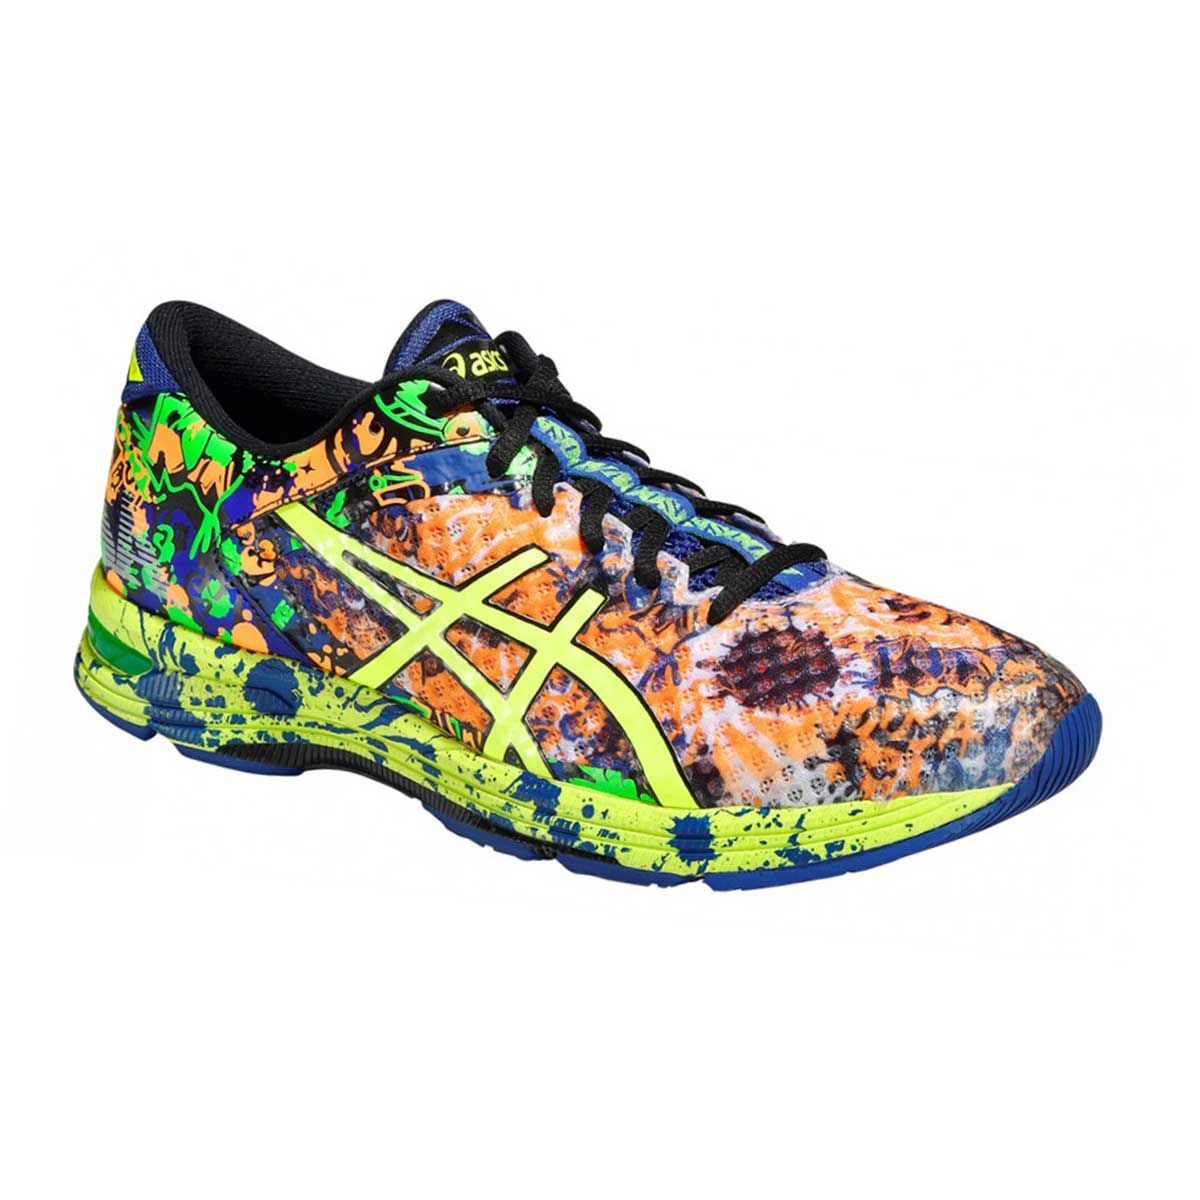 Running Shoes, Running, Buy, Asics, Asics Gel-Noosa Tri 11 Running Shoes  (Orange/Yellow/Blue)